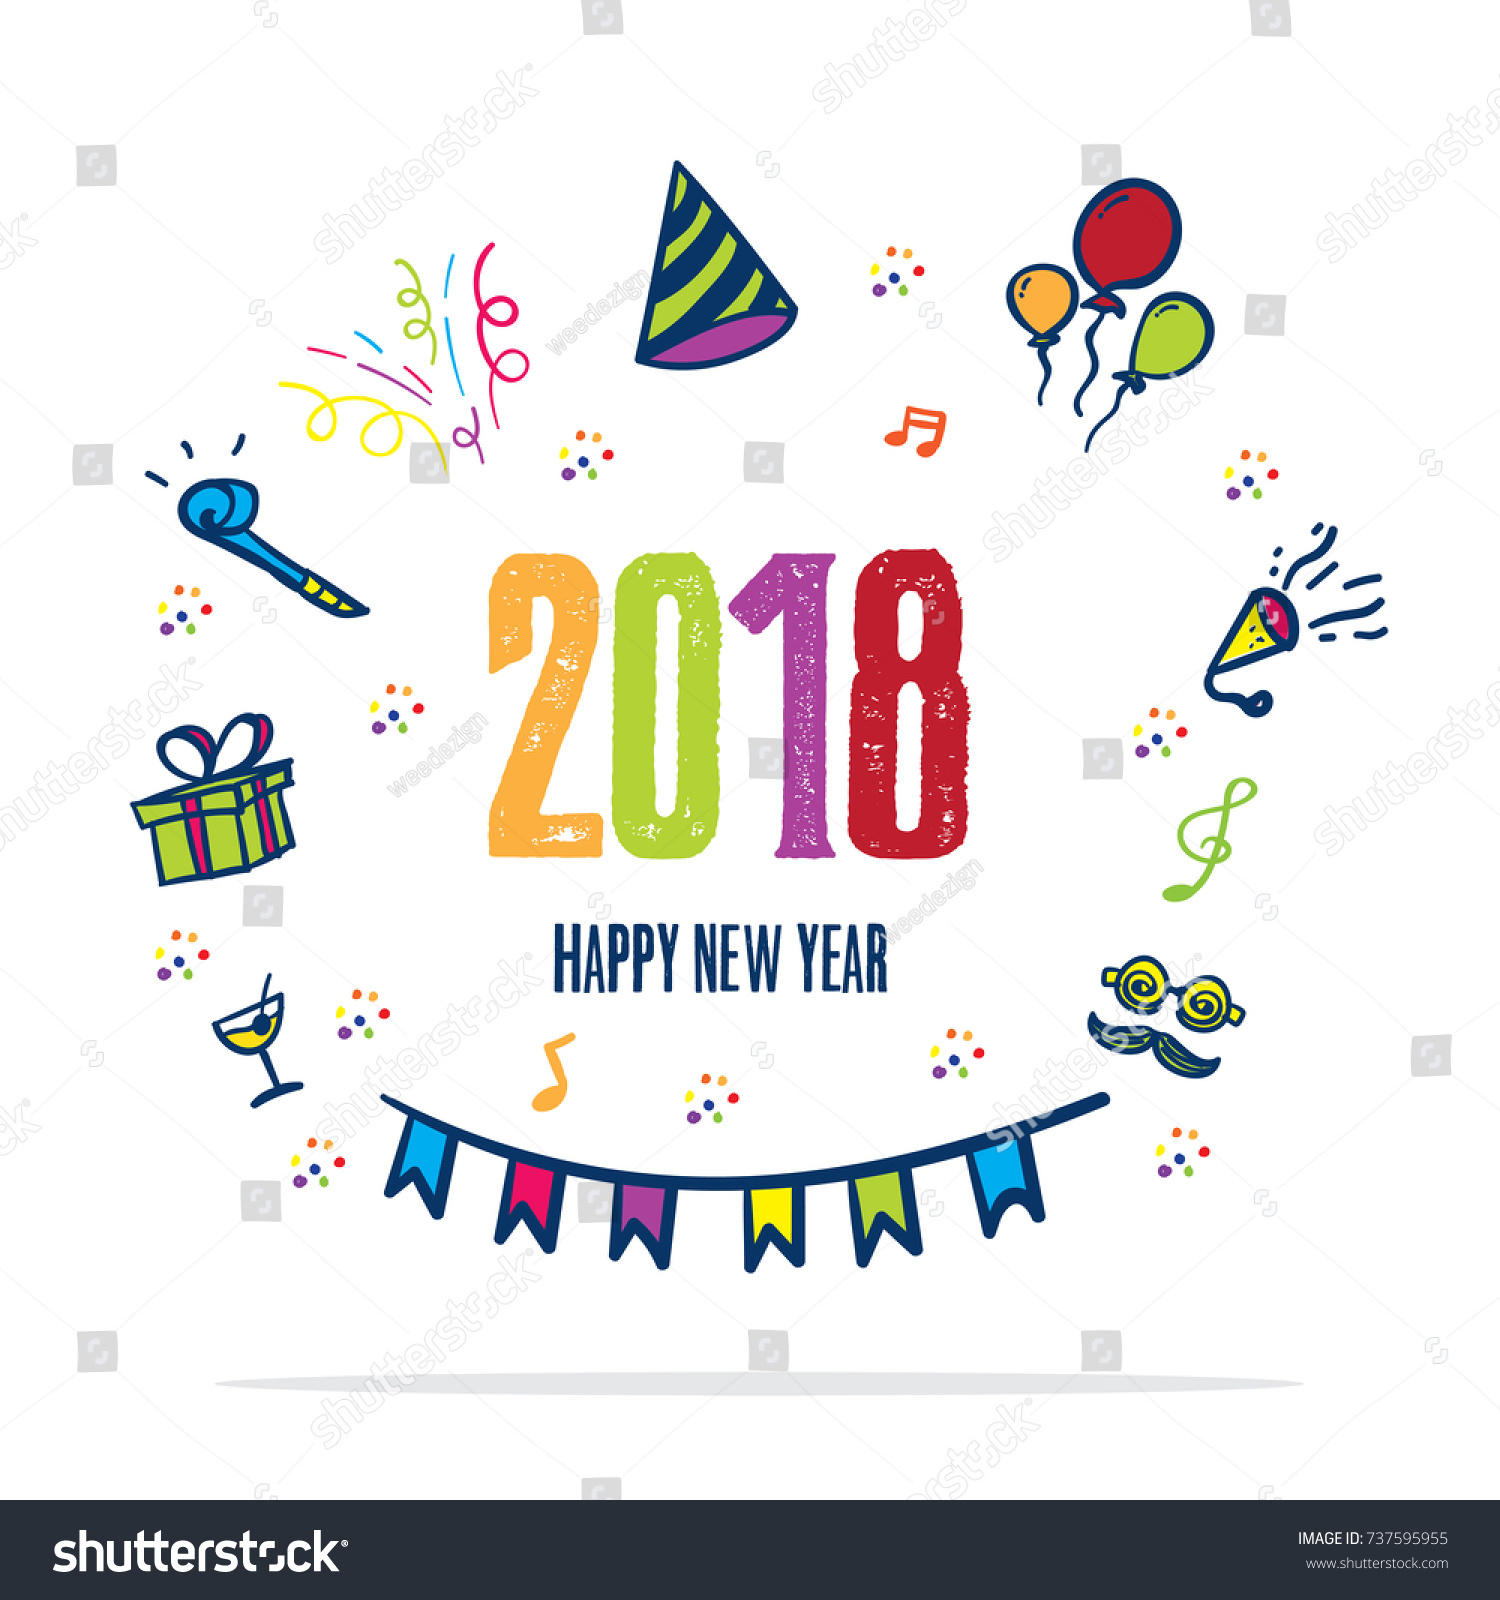 2018 Happy New Year Doodle Party Stock Vector (Royalty Free ...